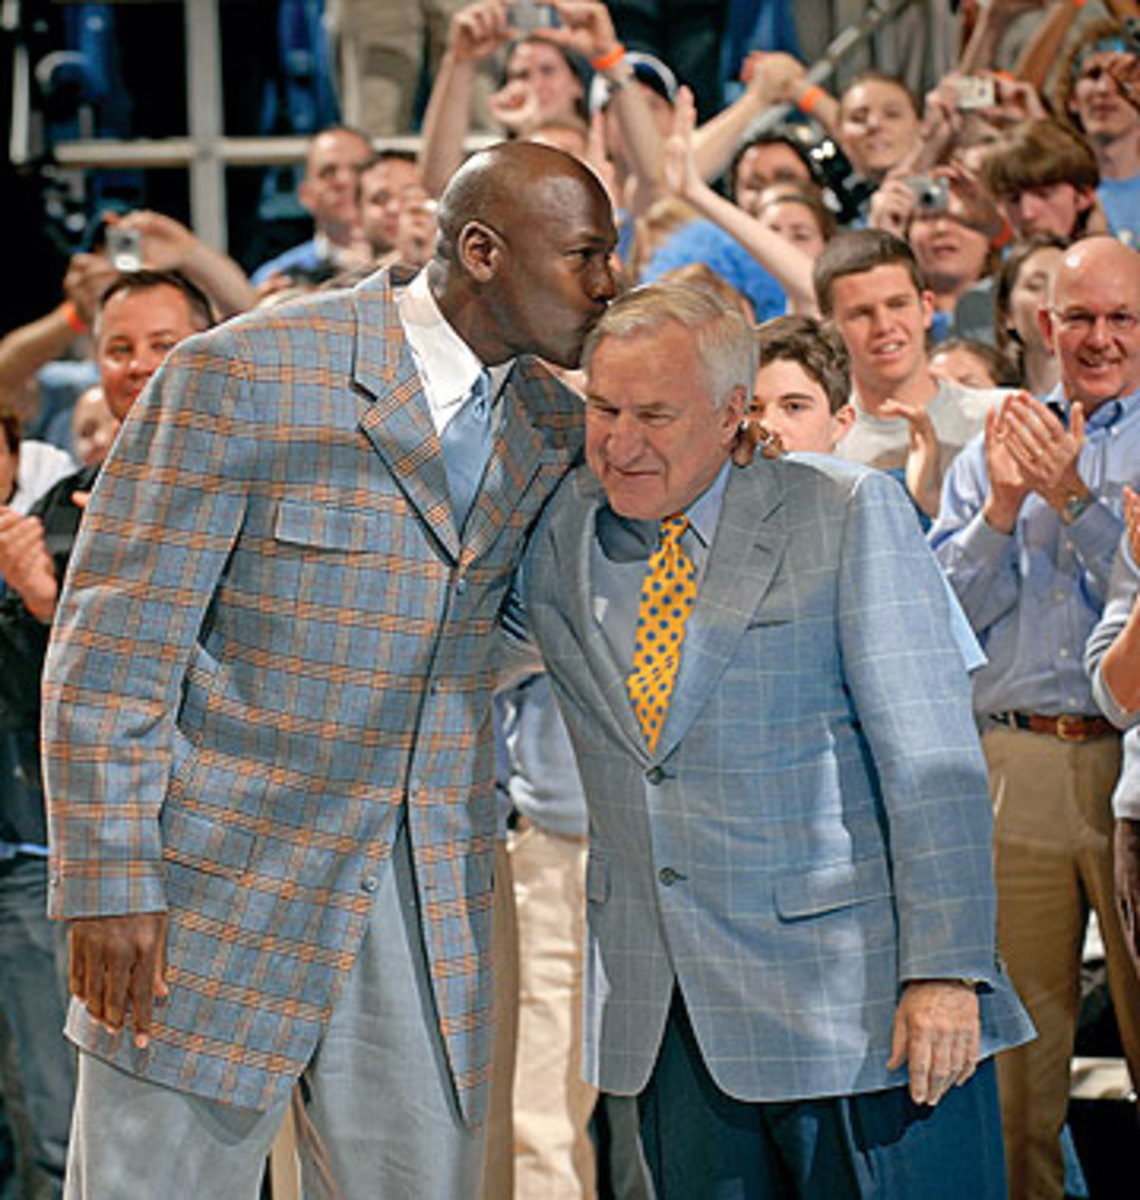 Michael Jordan and Dean Smith, in 2007 (Grant Halverson/Getty Images)